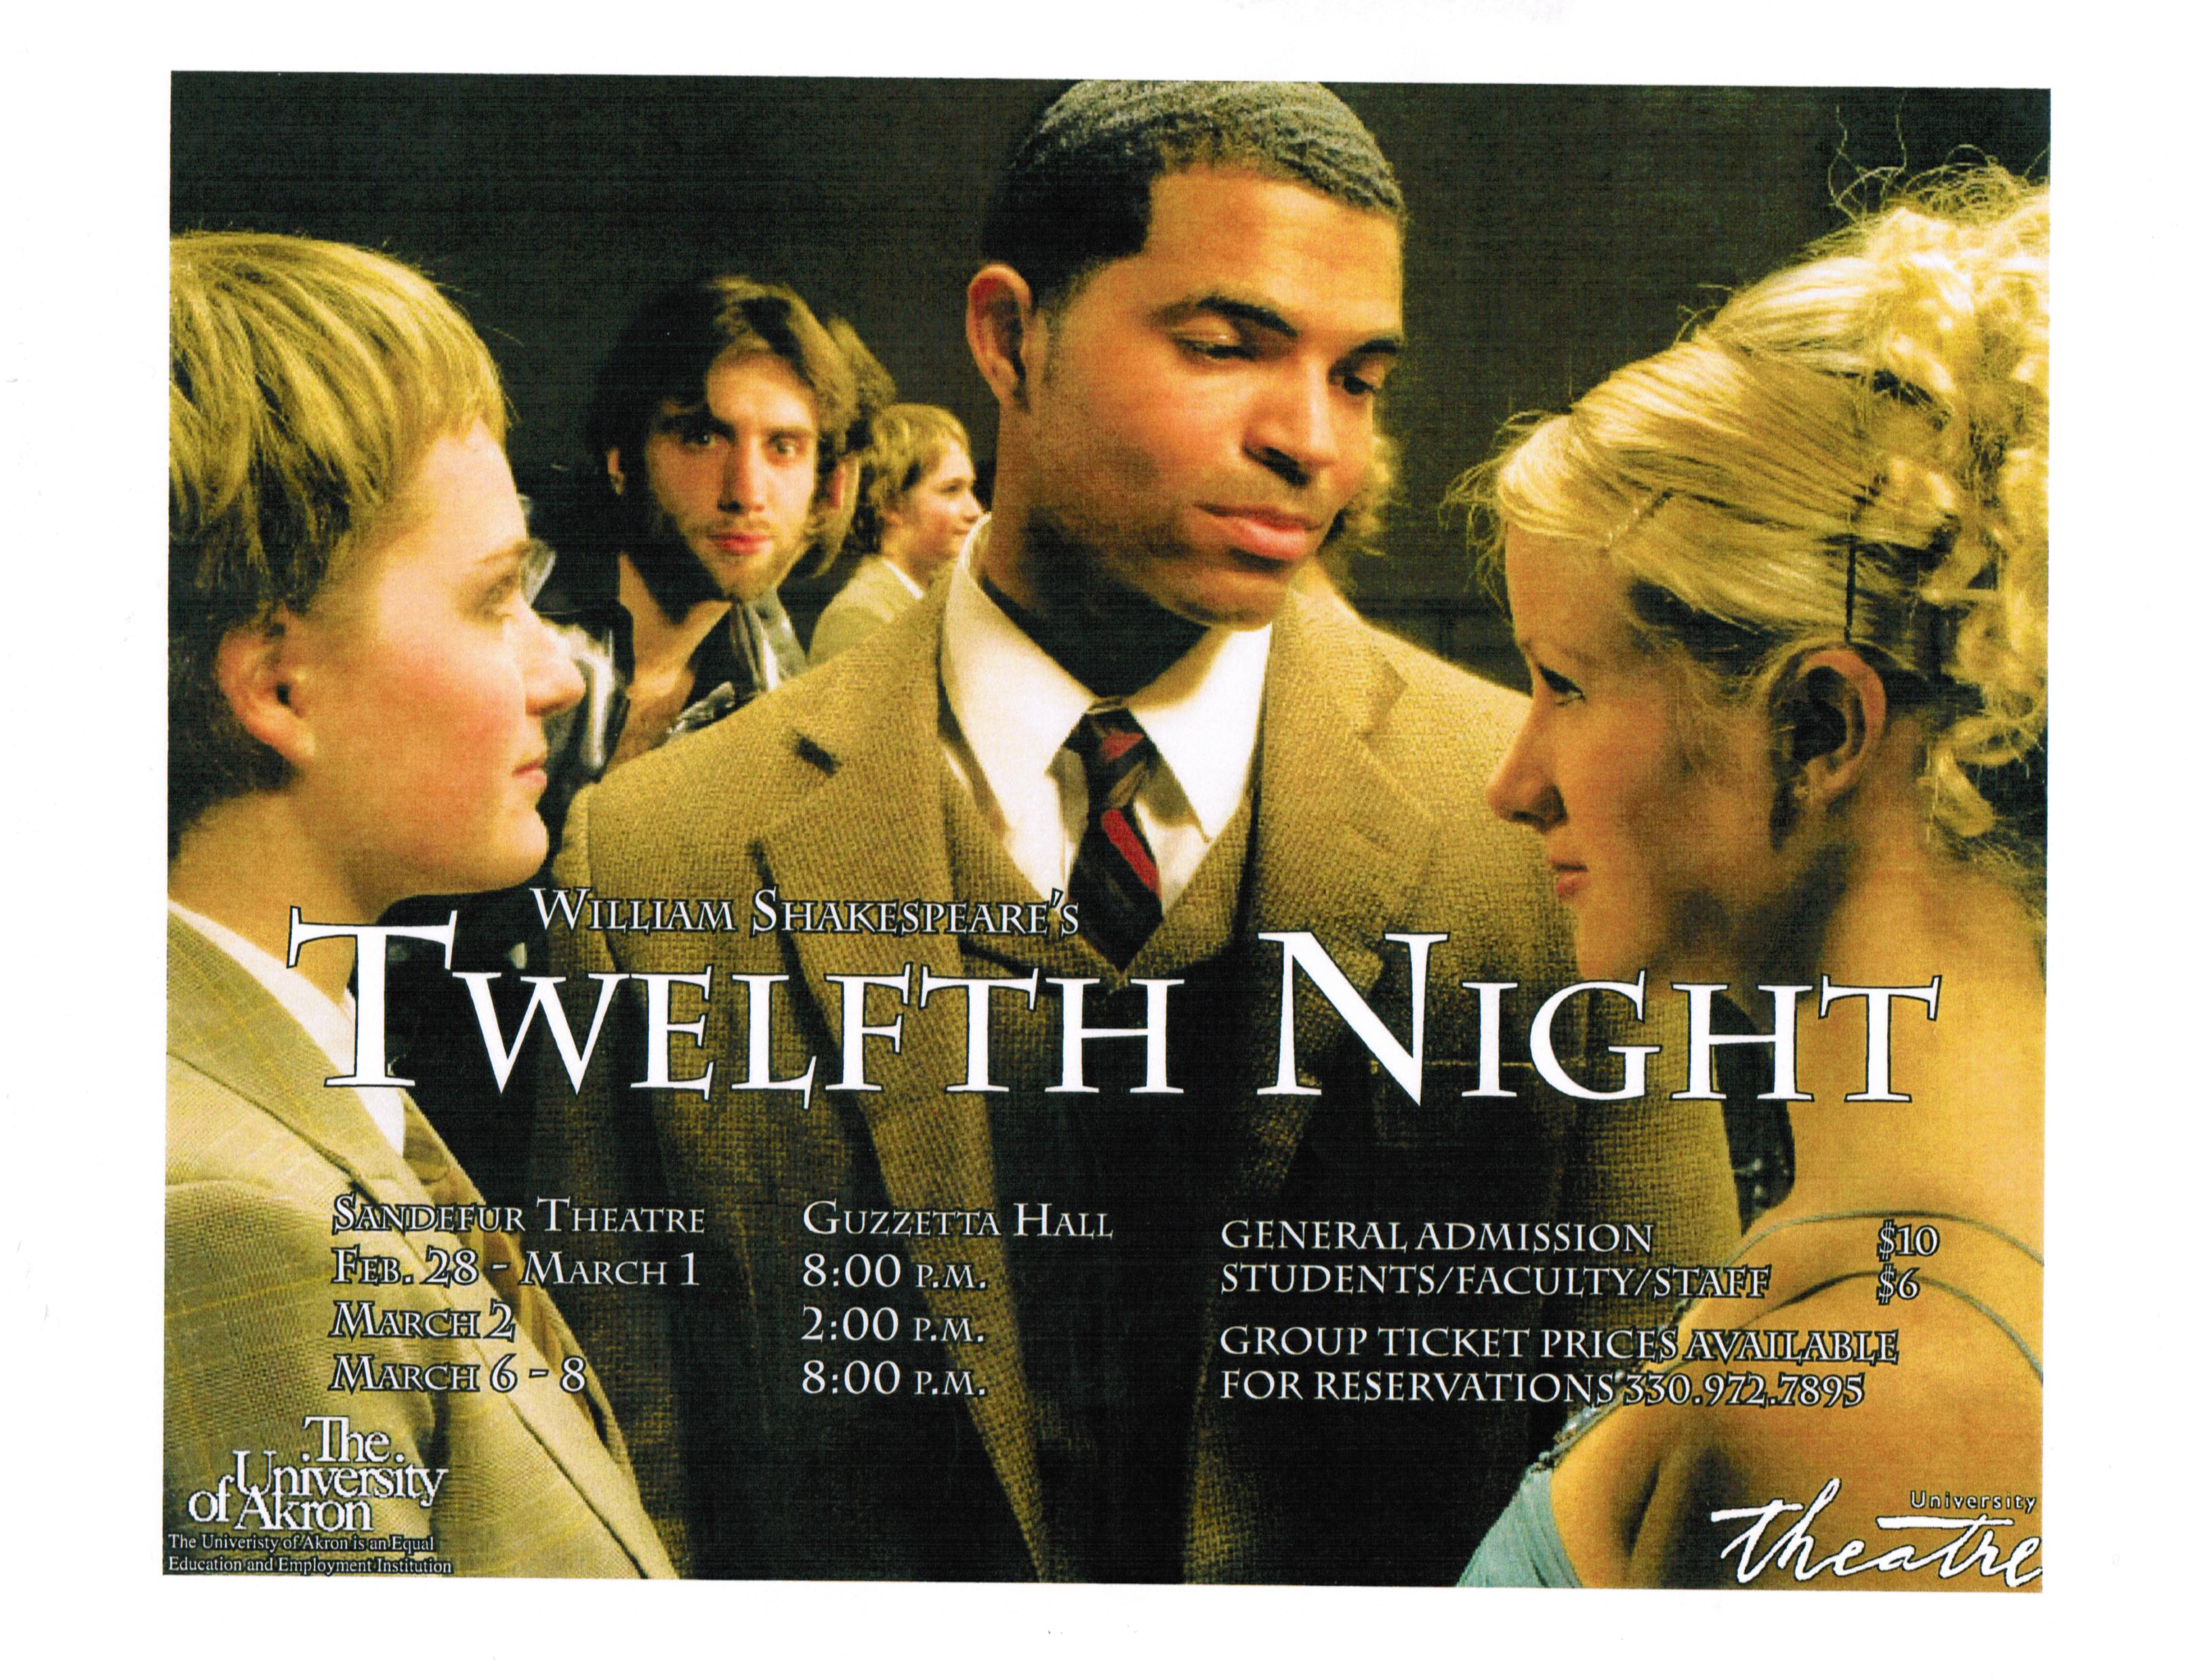 twelfth night lies and deceit William shakespeare's twelfth night is a romantic comedy written for the elizabethan stage  in delay there lies no plenty  deceit drives the plot of twelfth .